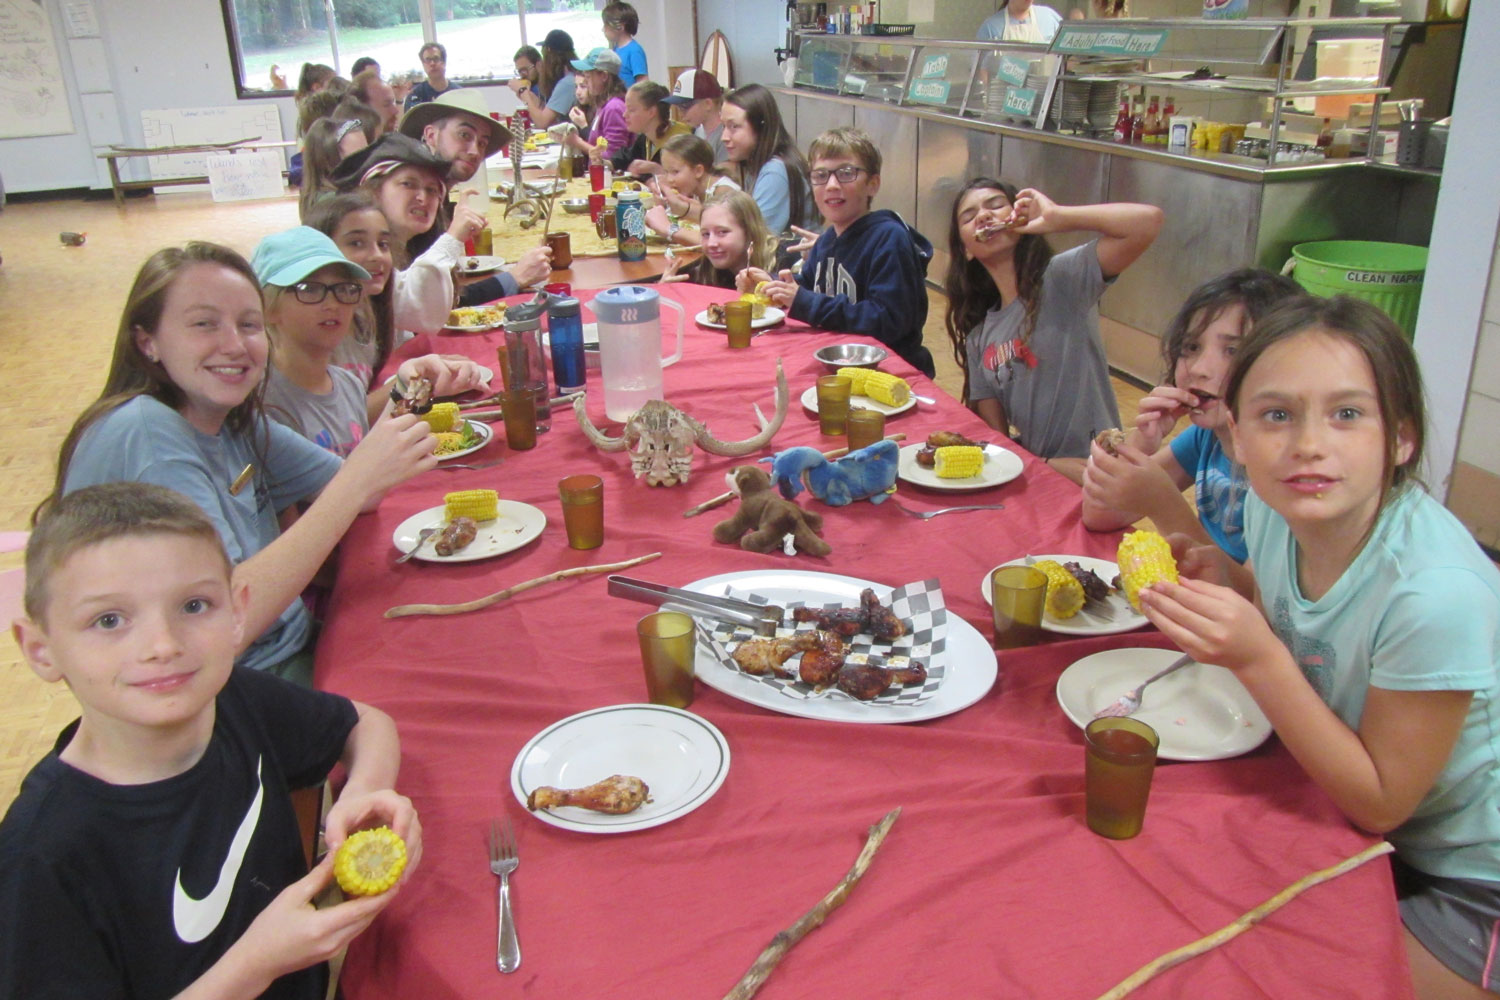 Tremont Institute students enjoy a meal in the Dining Hall